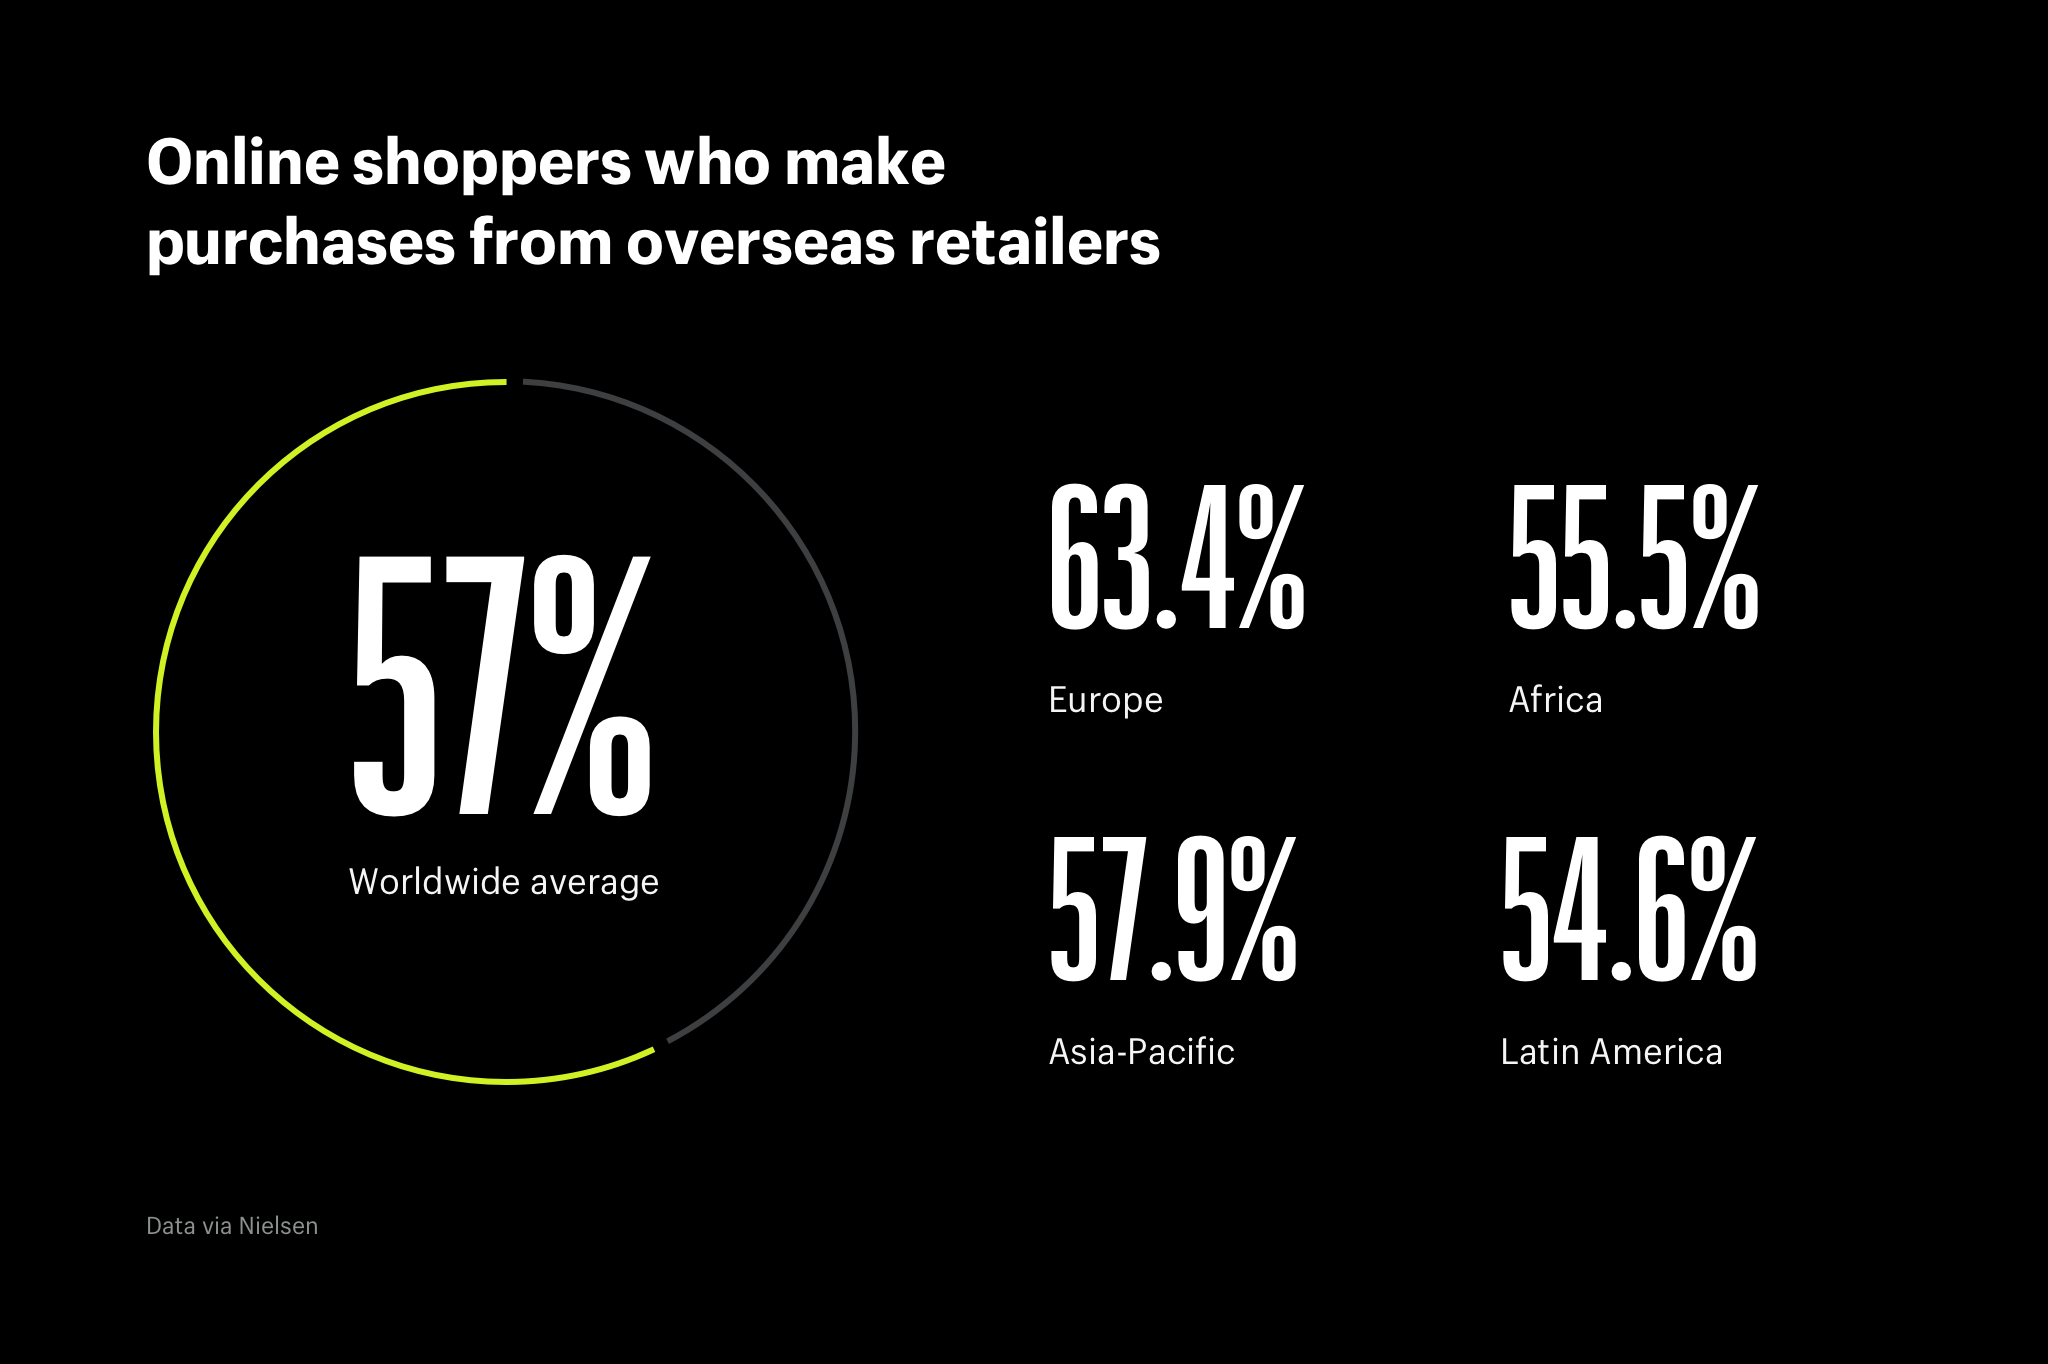 Online shoppers who make purchases from overseas retailers